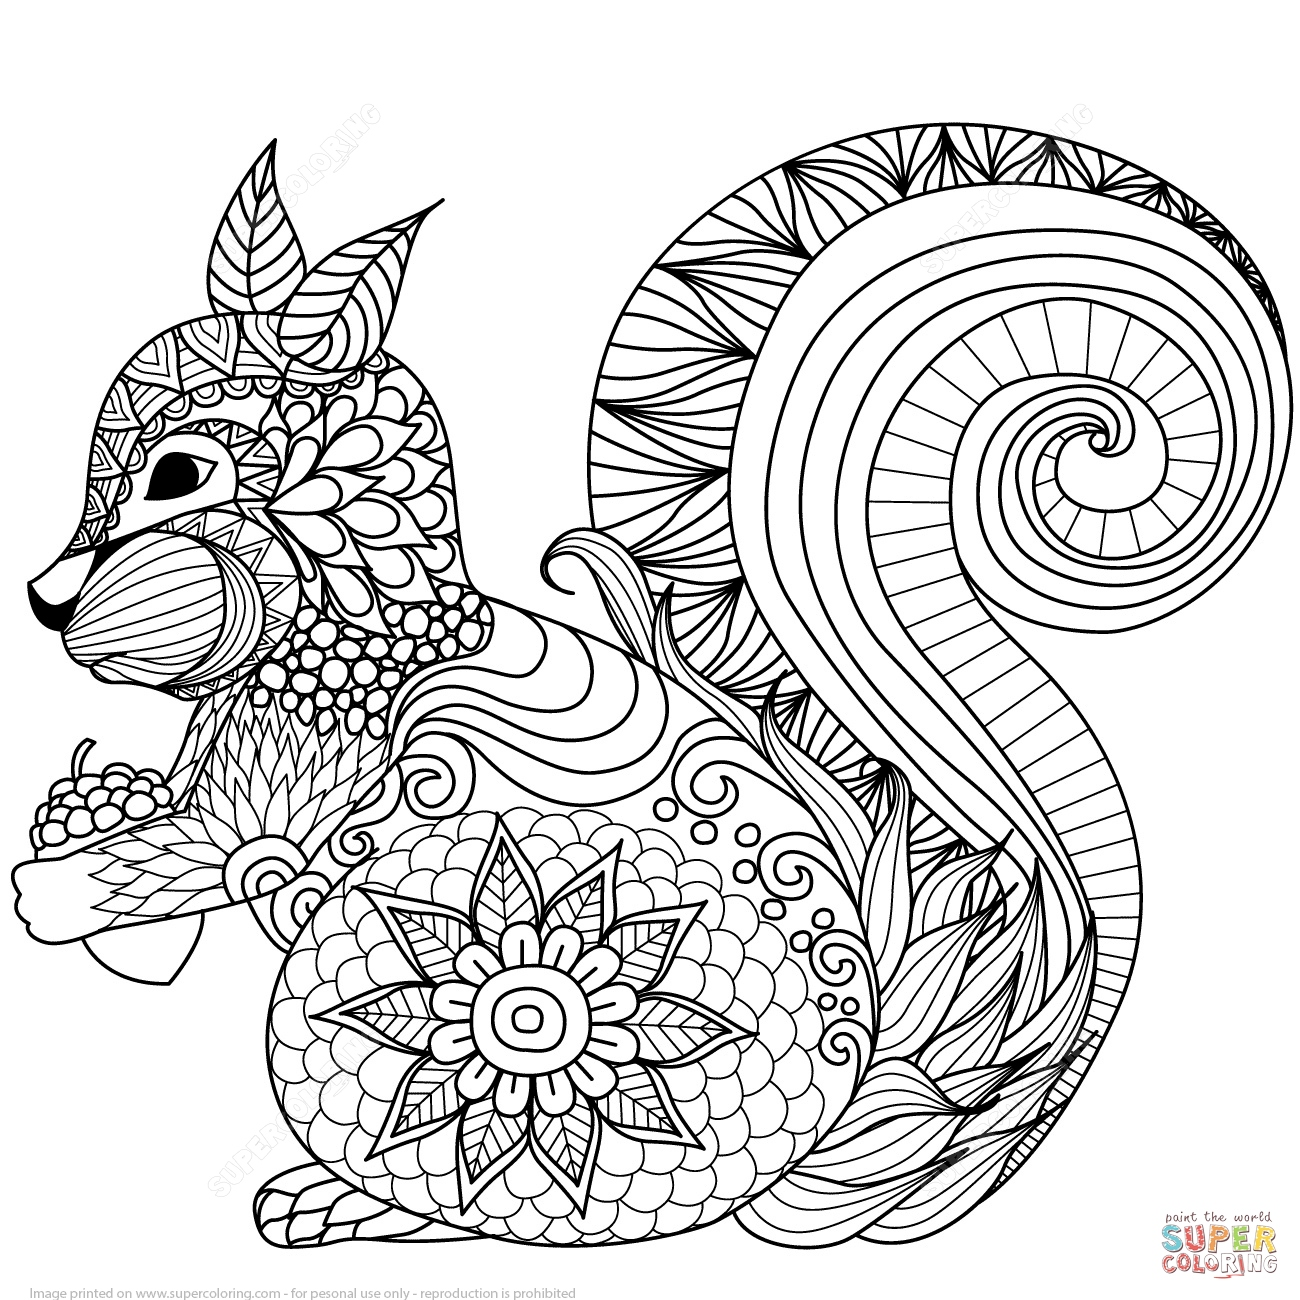 coloring pages zentangle zentangle animal coloring pages at getcoloringscom free pages zentangle coloring